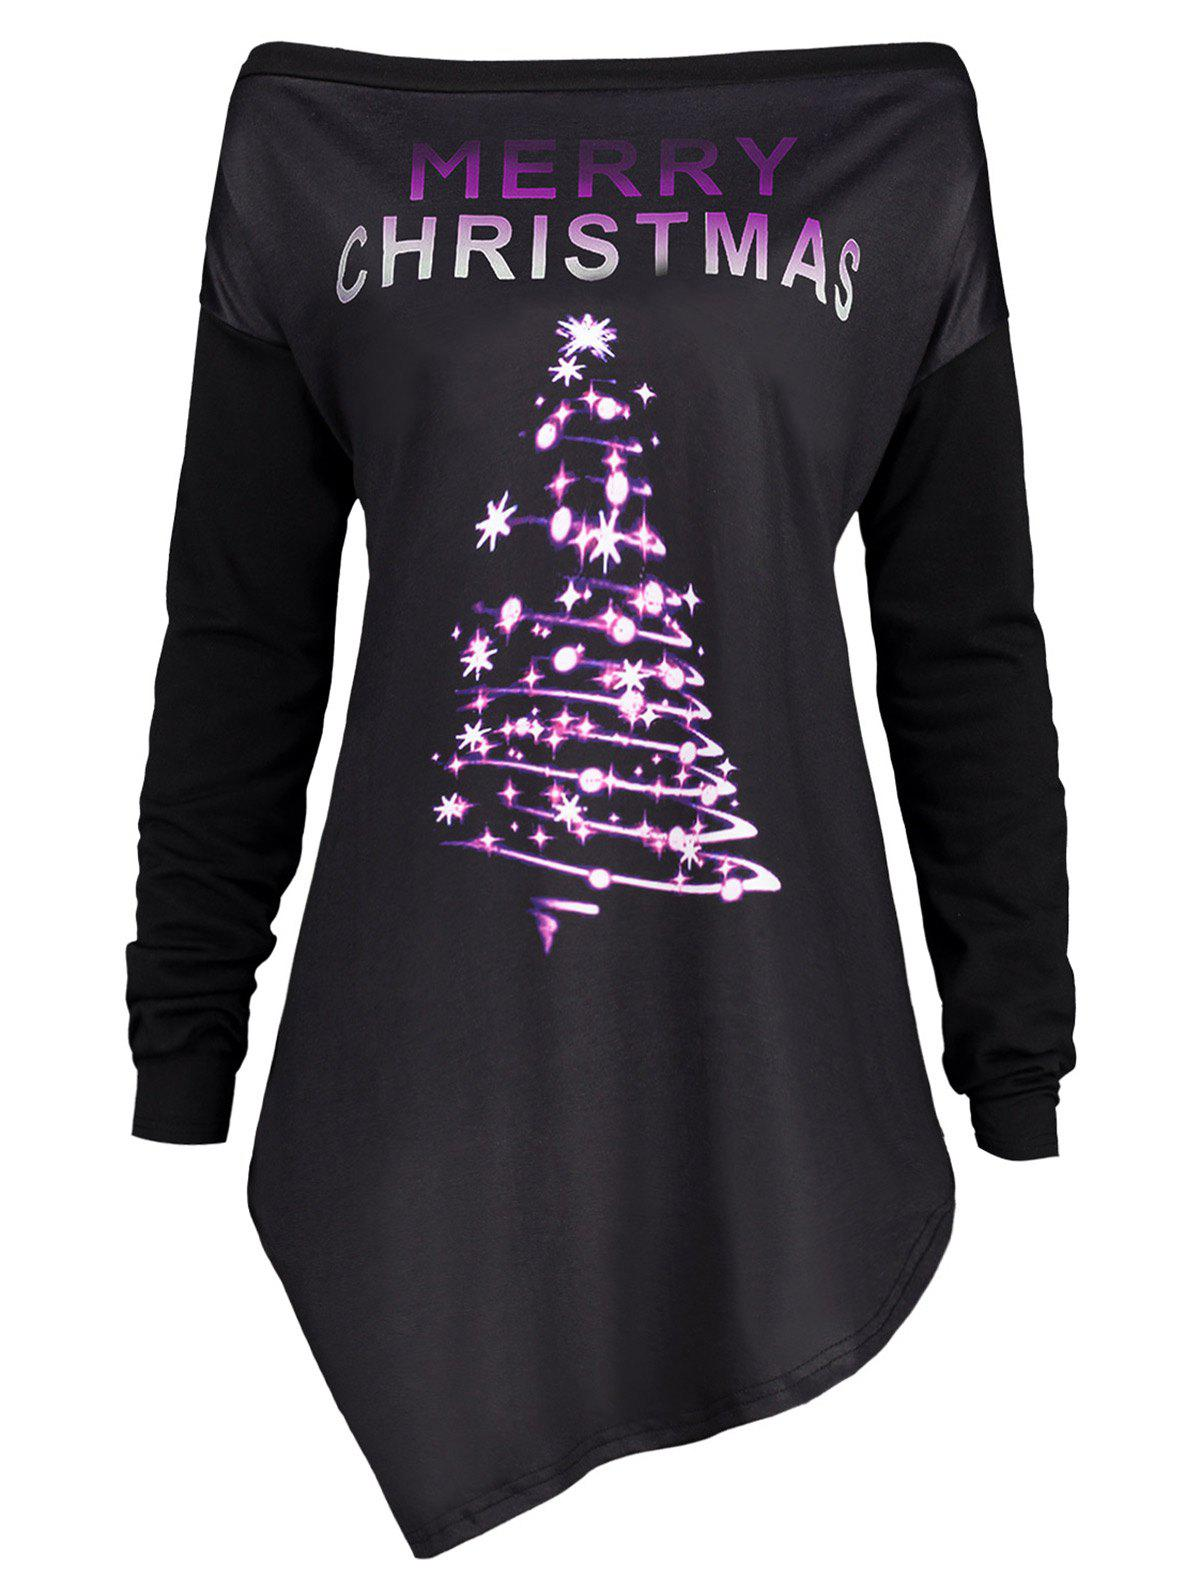 Shop Merry Christmas Plus Size Irregular Tunic T-shirt